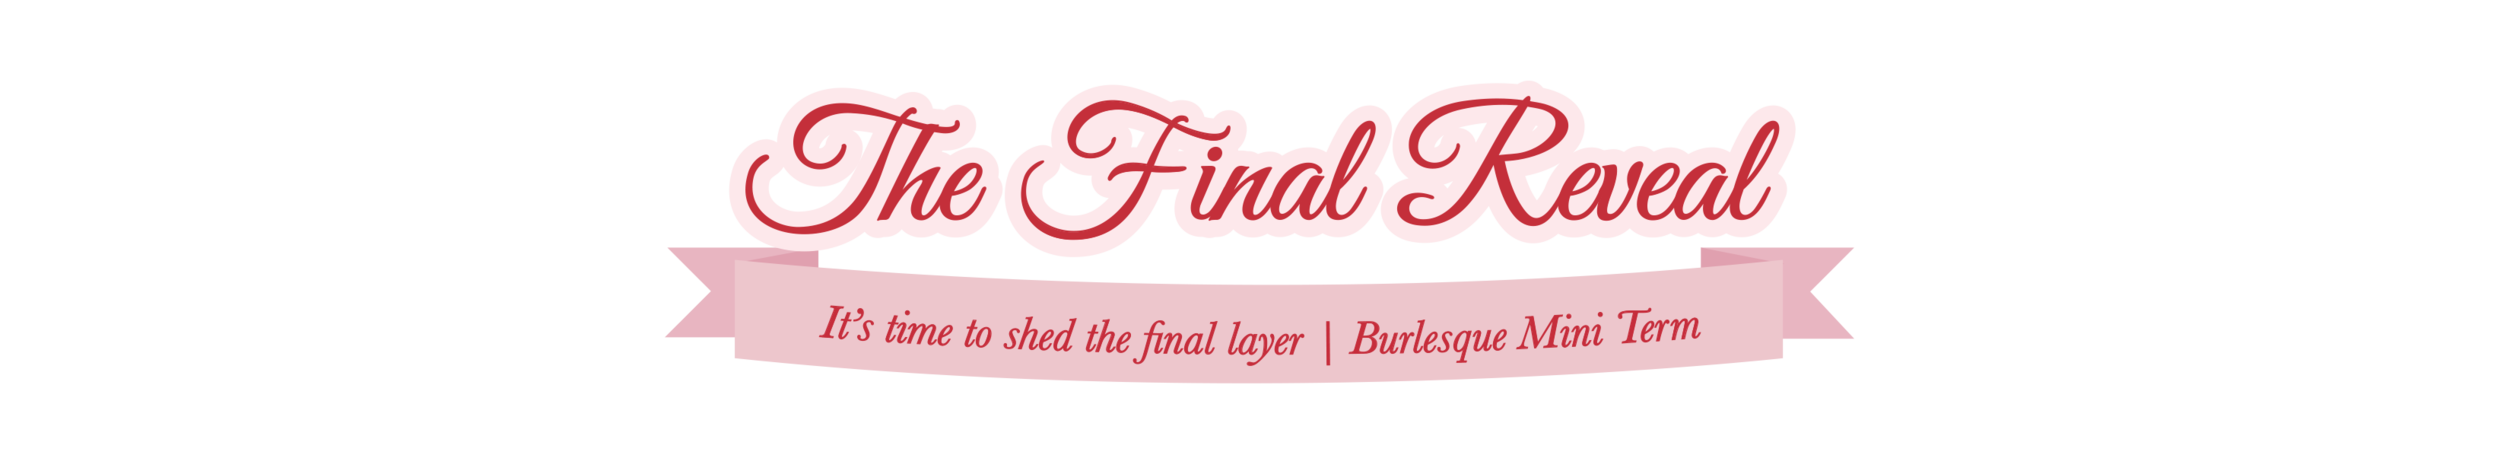 final-reveal-banner.png